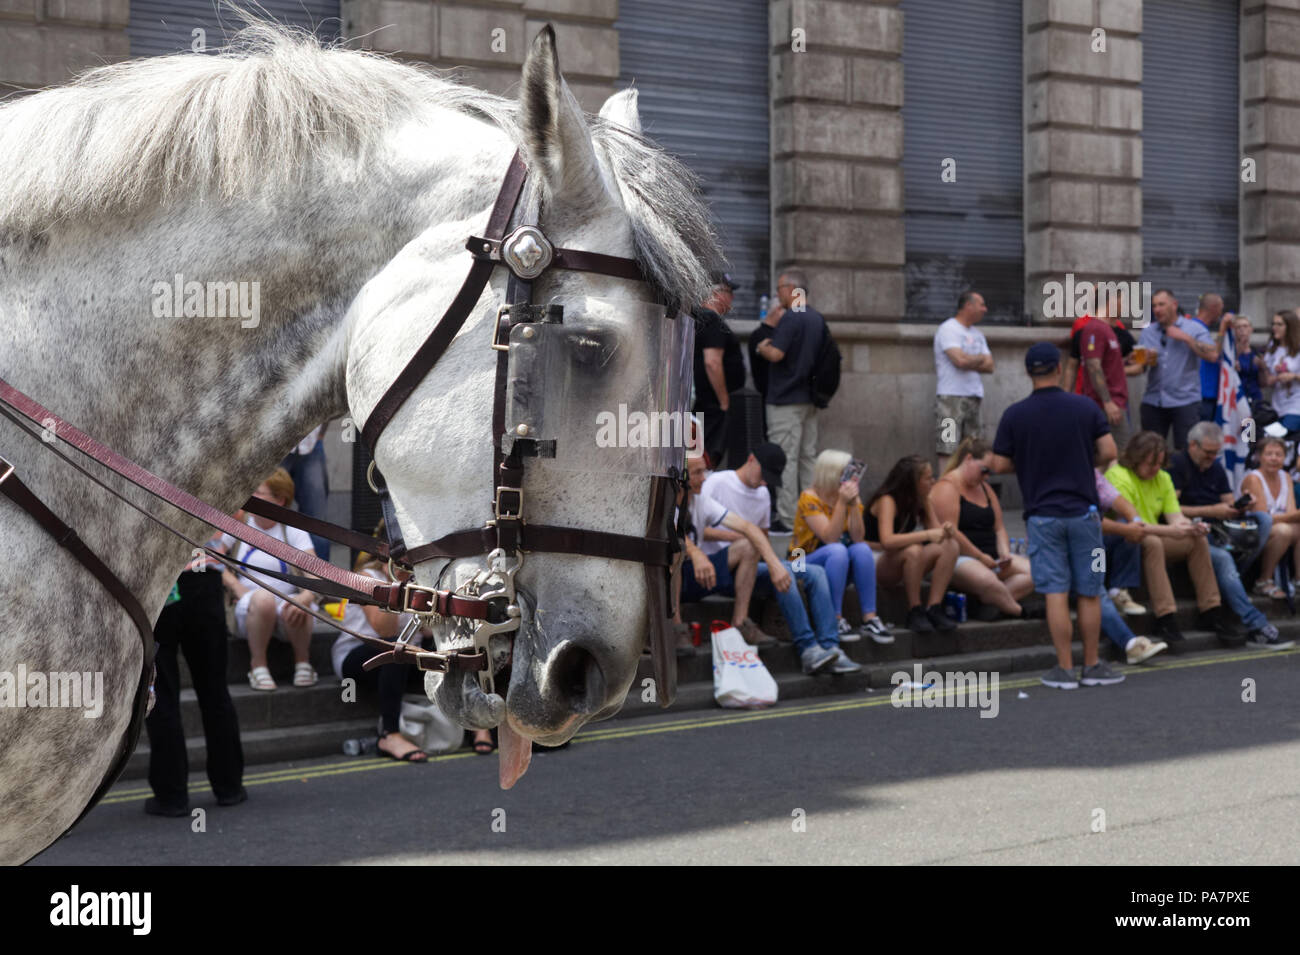 Police Horse In Full Riot Gear With Tong Out Stock Photo Alamy